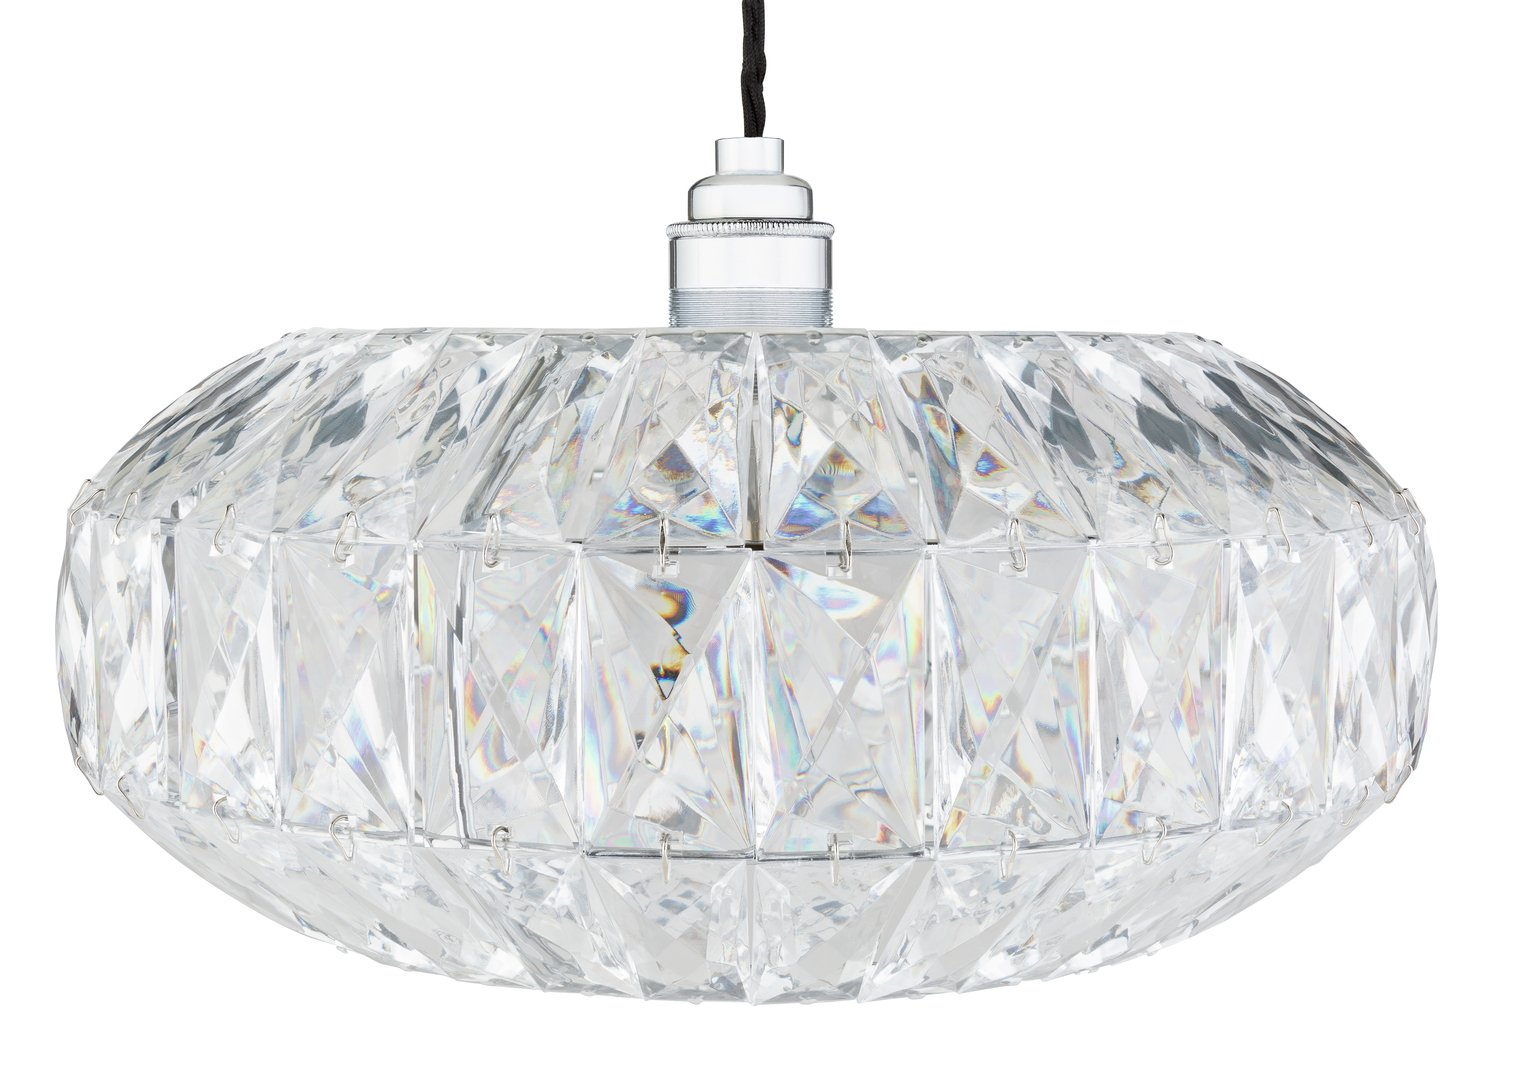 Argos Home Savannah Acrylic Ceiling Pendant Light